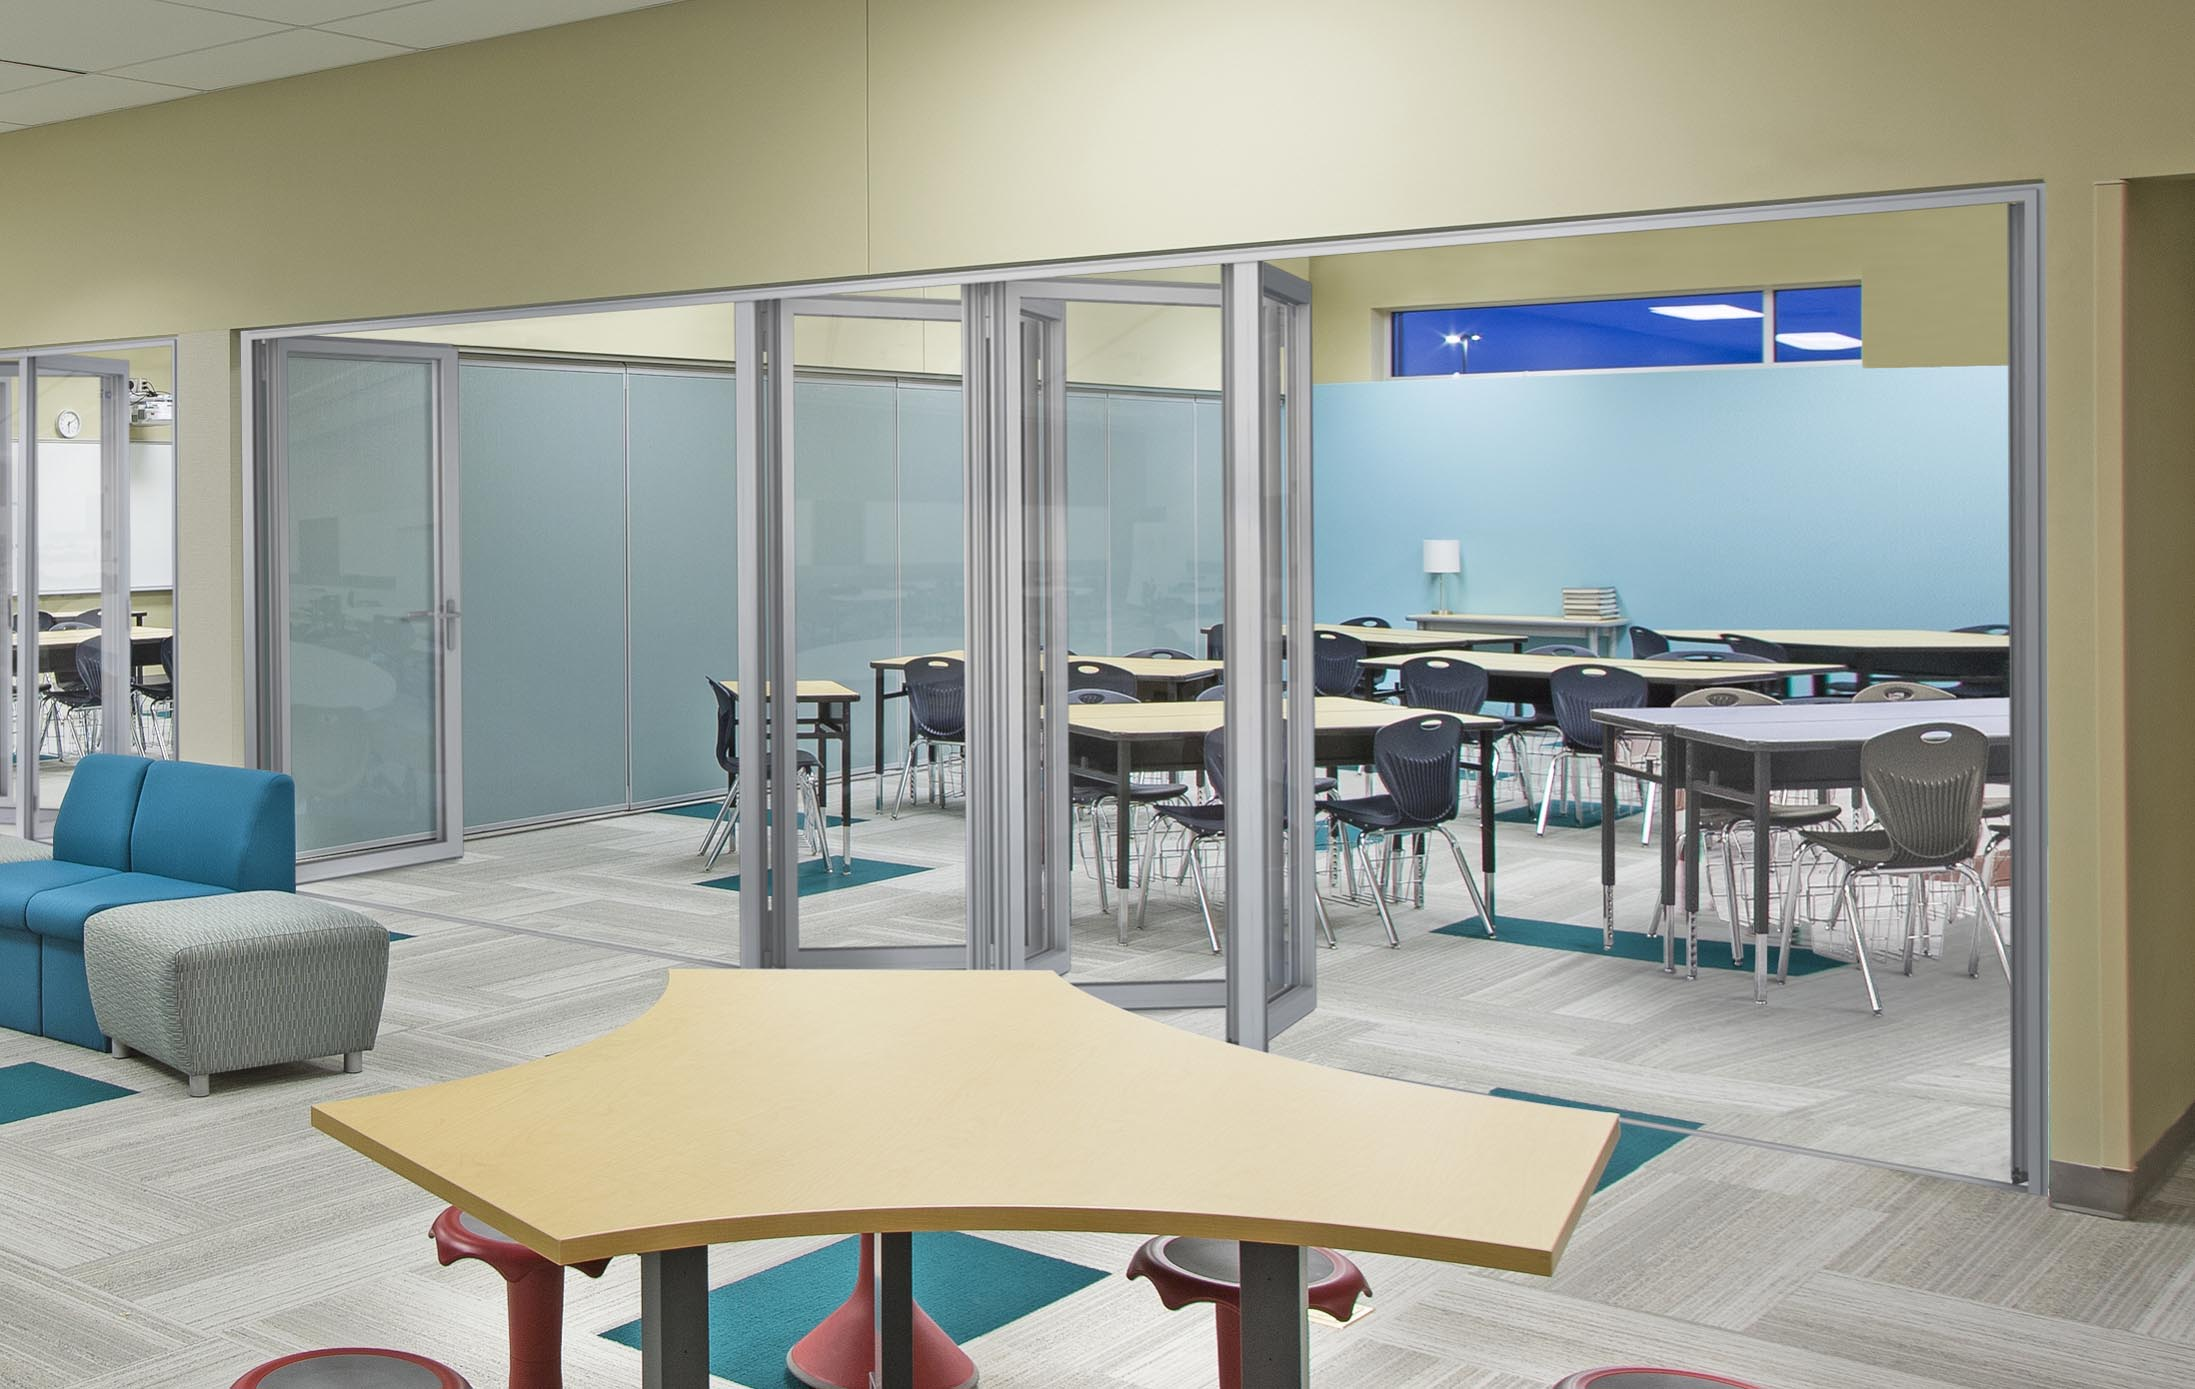 Introducing AcoustiFOLD, Our STC 45 Rated Folding Glass Wall   NanaWall